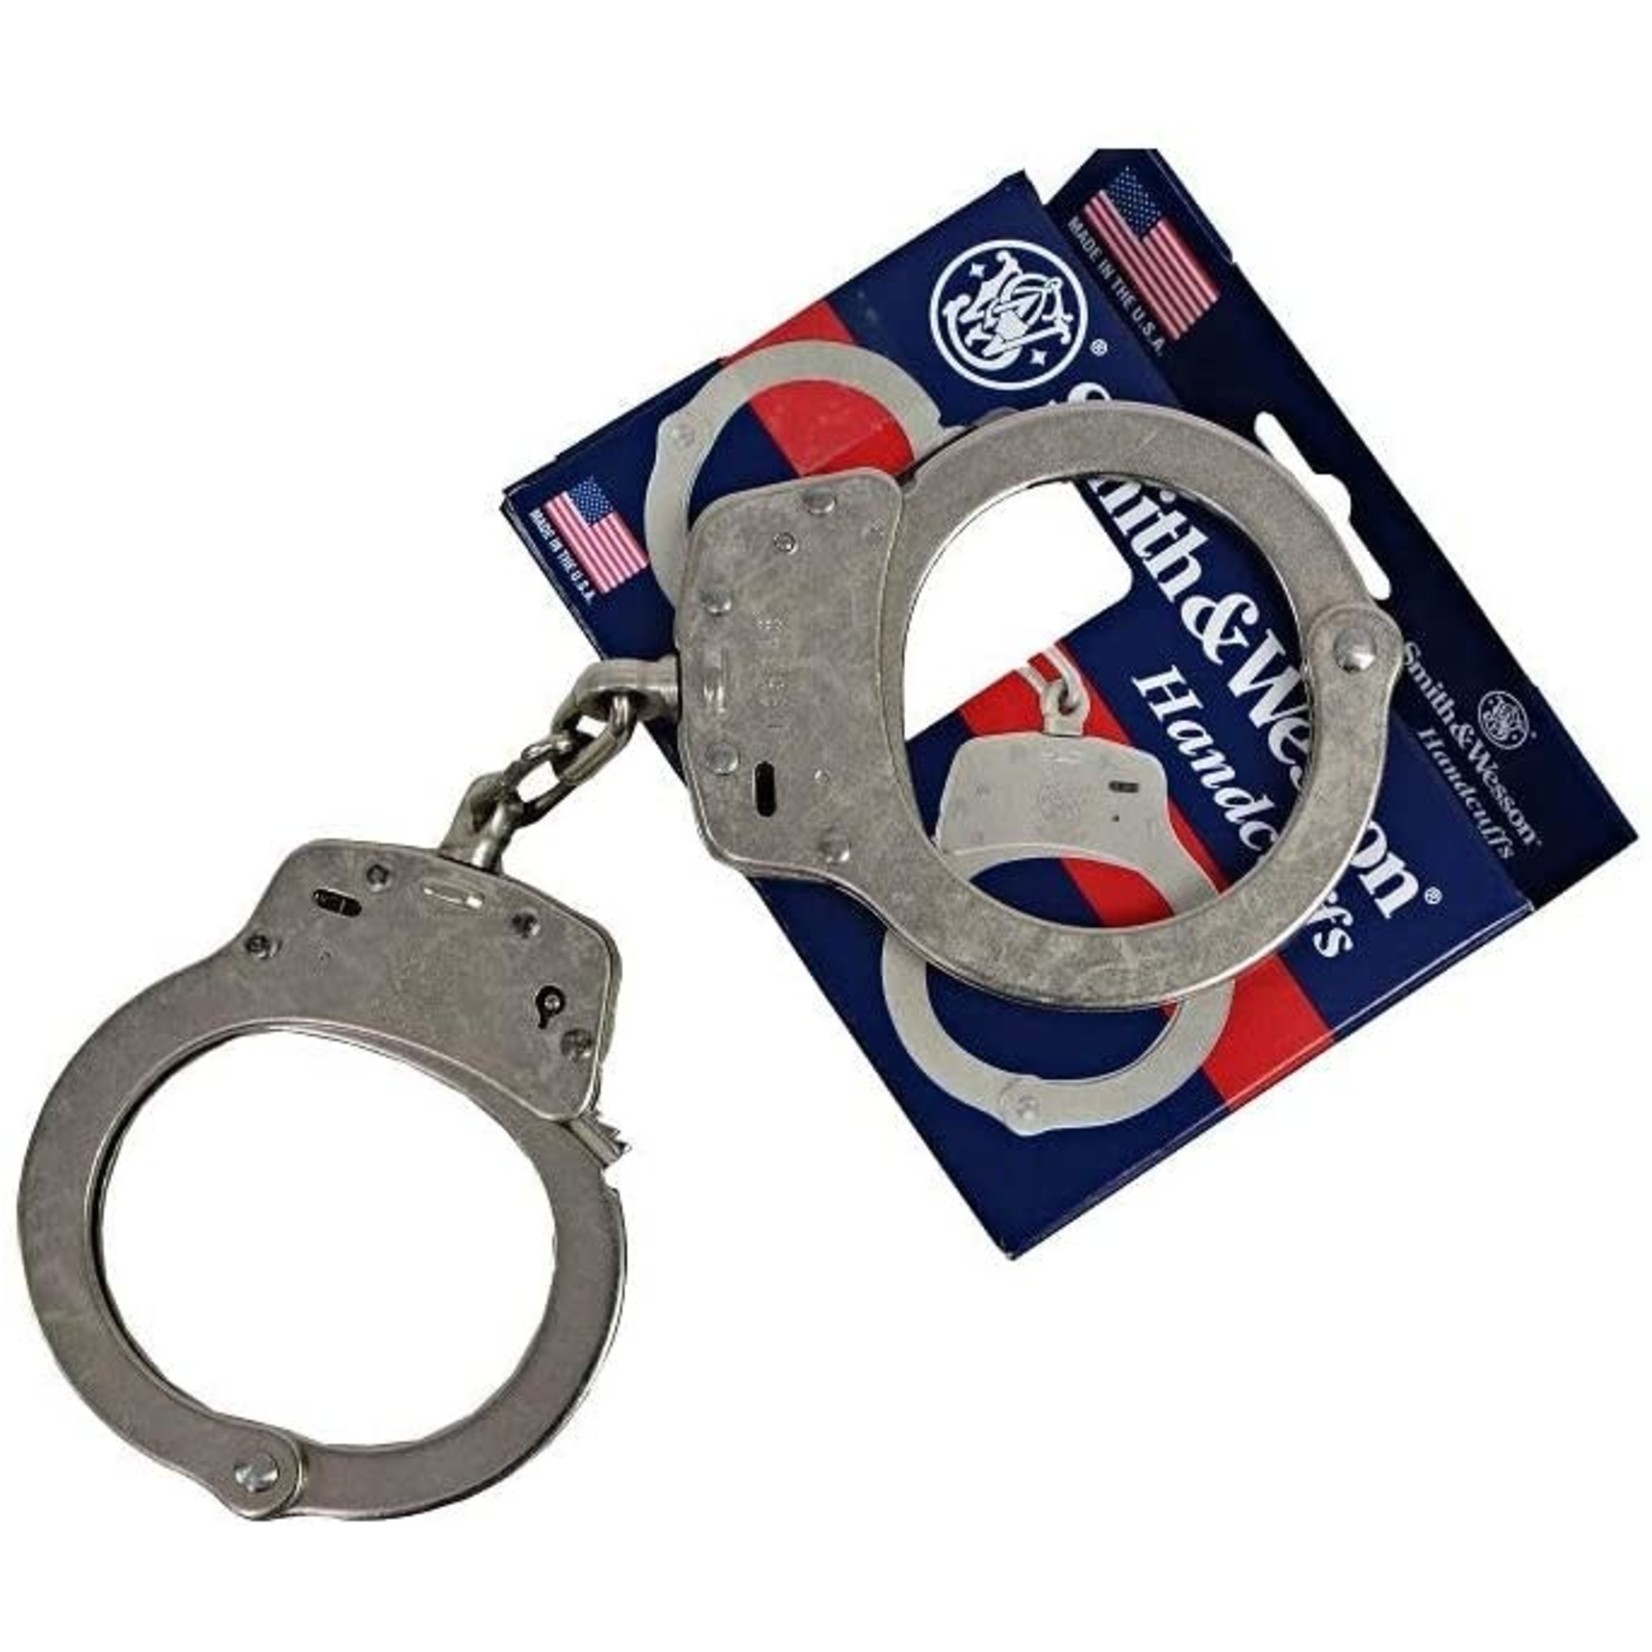 Smith & Wesson Smith & Wesson Handcuffs -Model 100-1 M&P Nickel